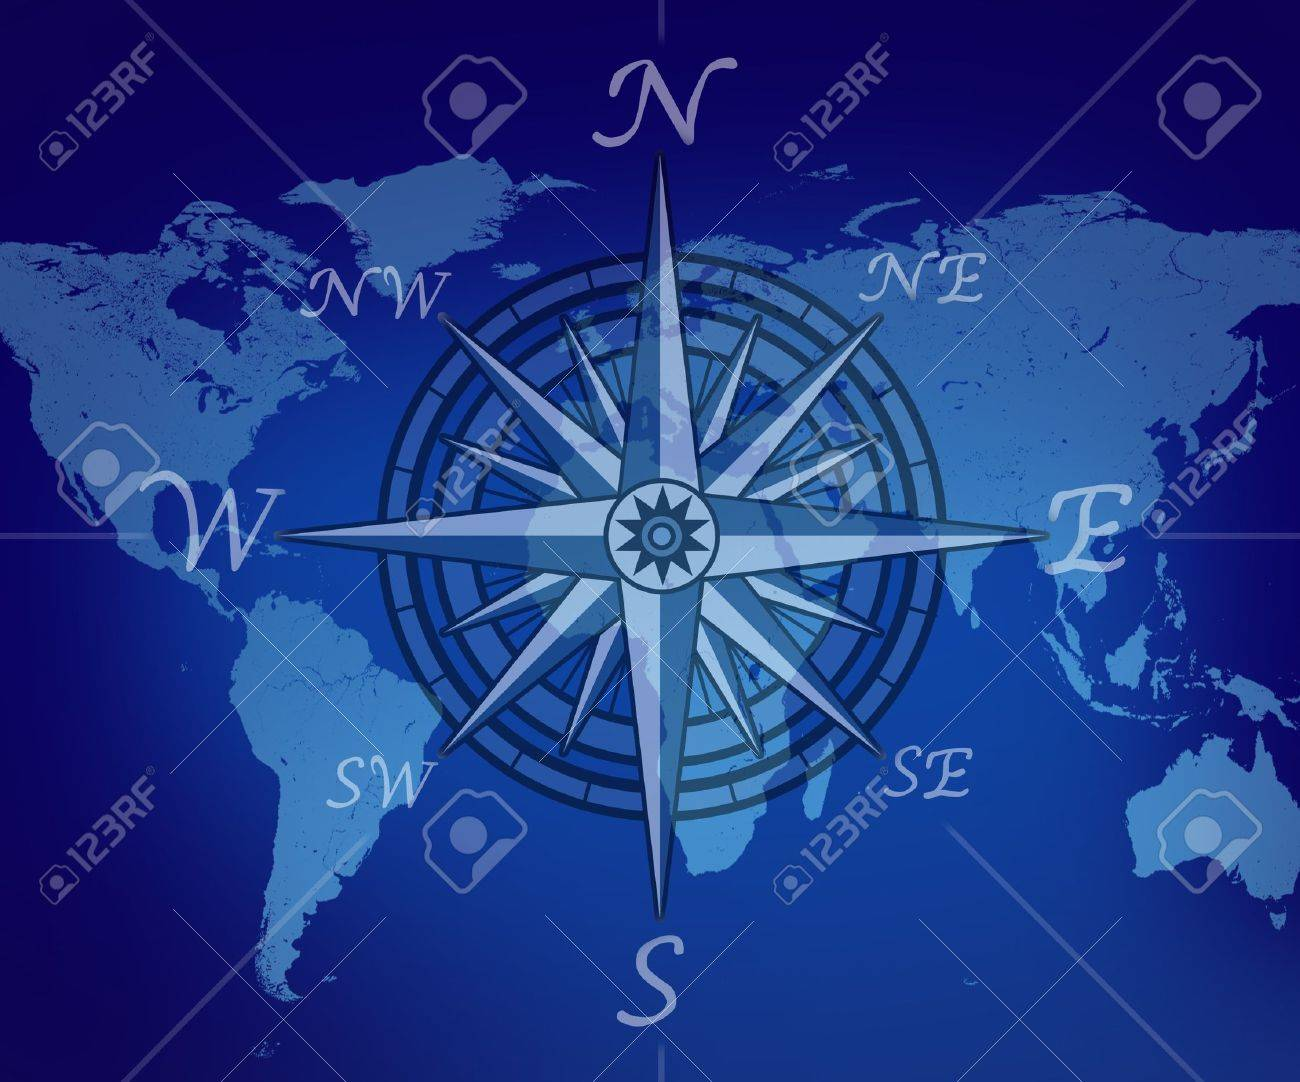 Map of the world with compass on blue background representing travel and business traveling journey for navigating to new global trading opportunities with the world. Stock Photo - 10945962